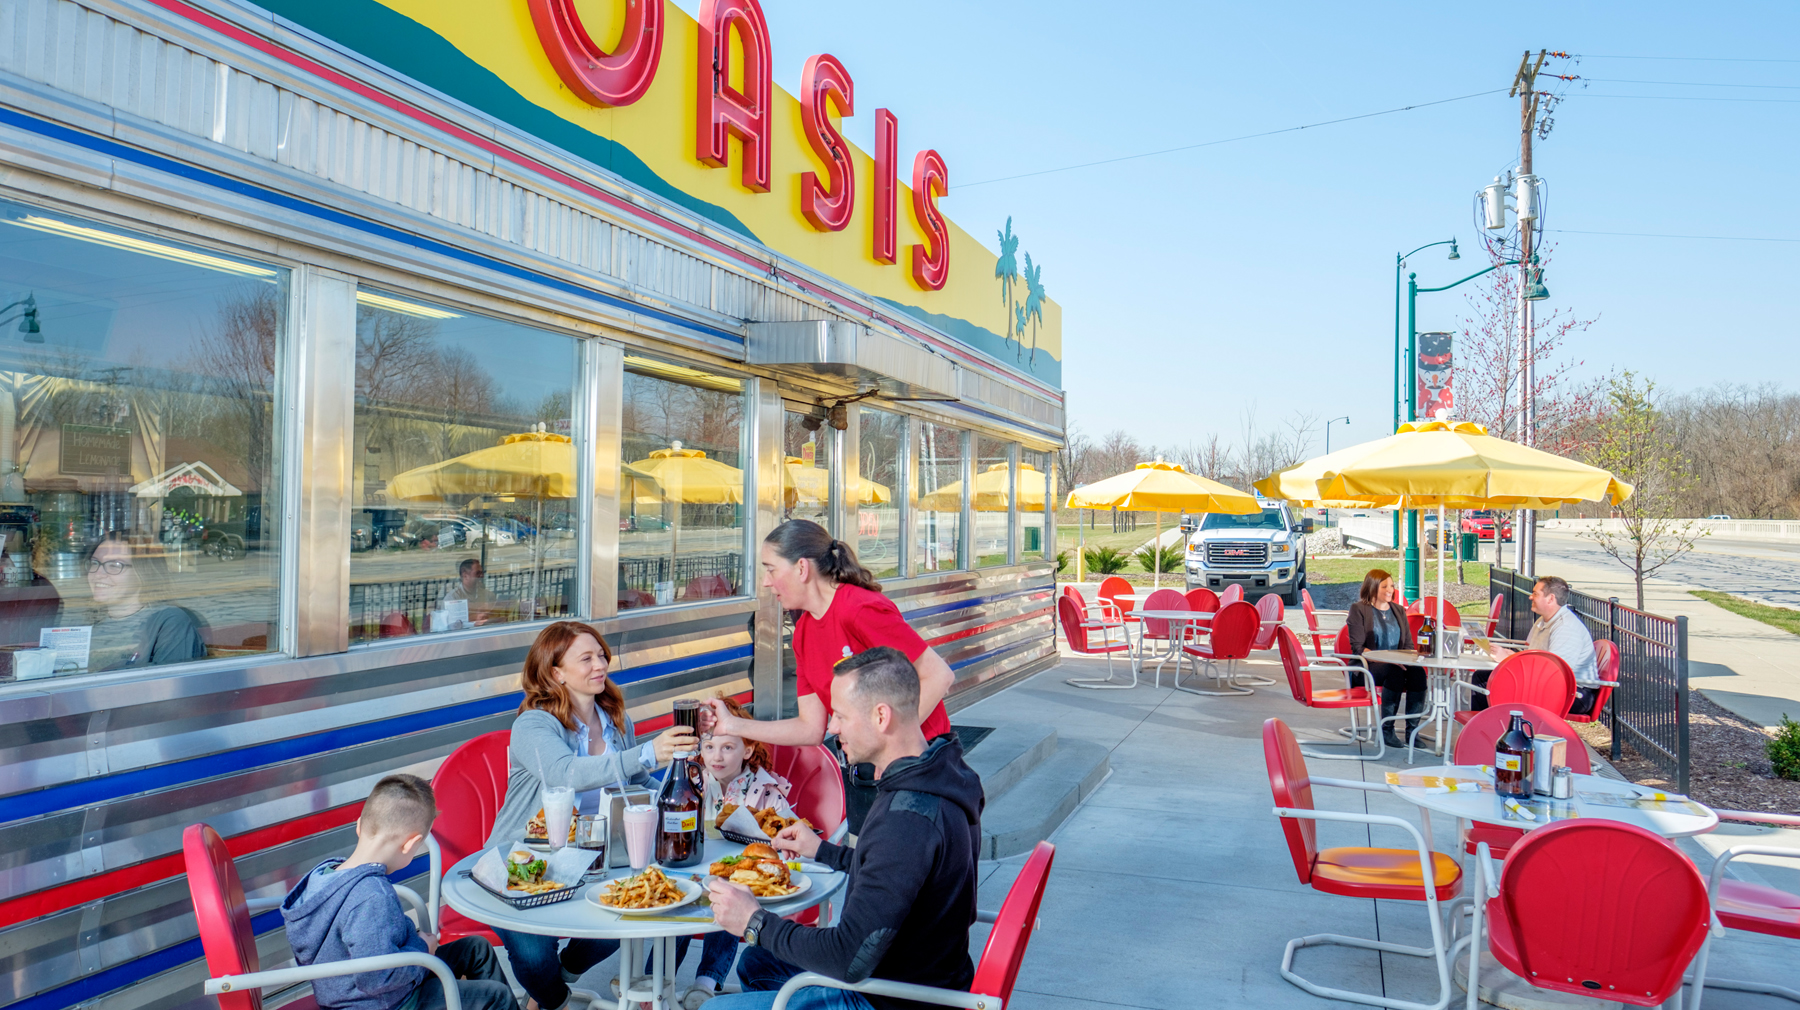 Plainfield Indiana Restaurants And Attractions Near Indianapolis